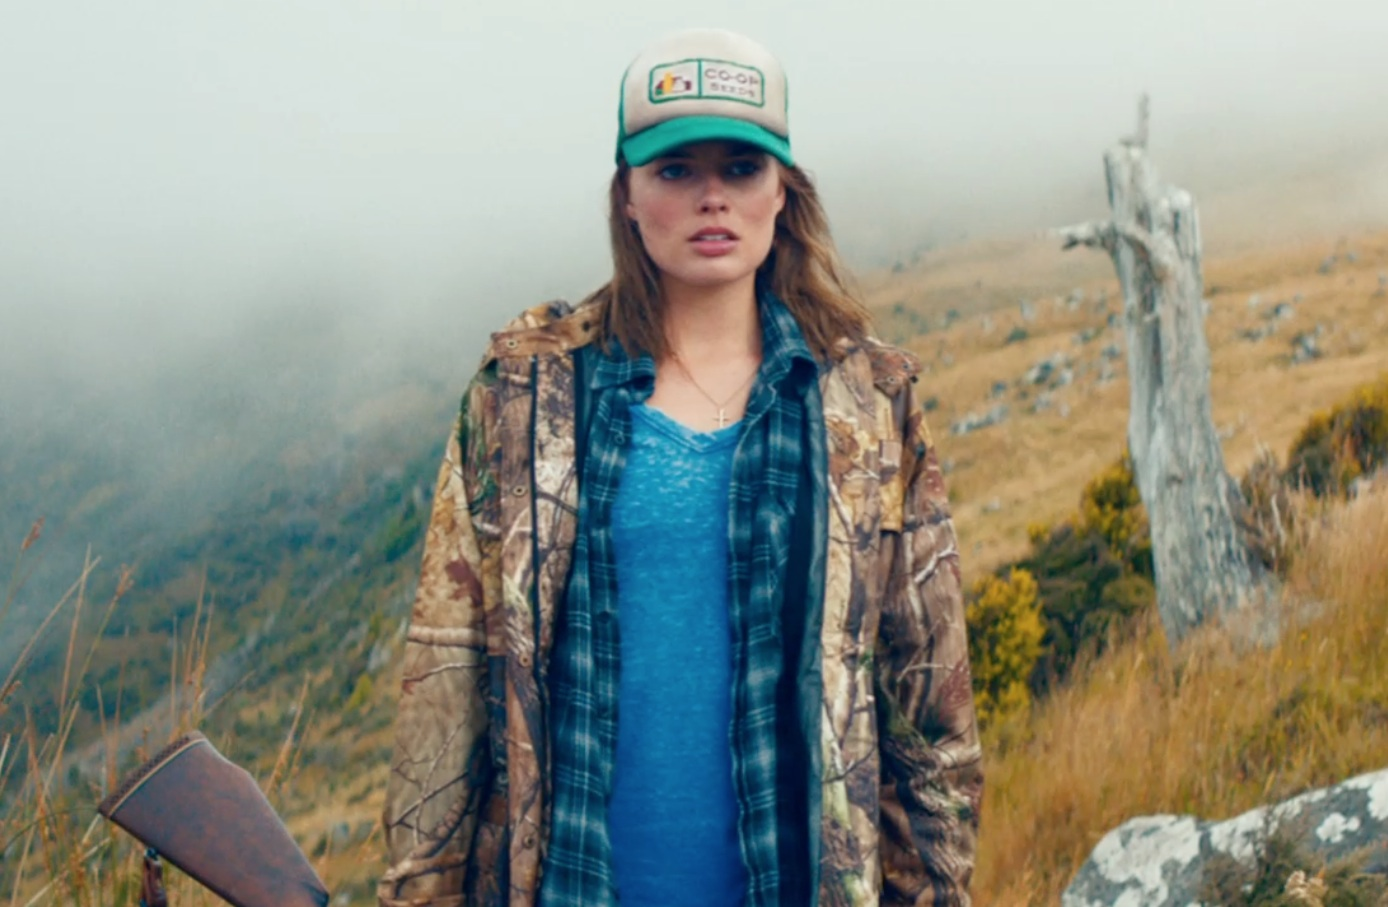 Check out the Z For Zachariah trailer, starring Margot Robbie.